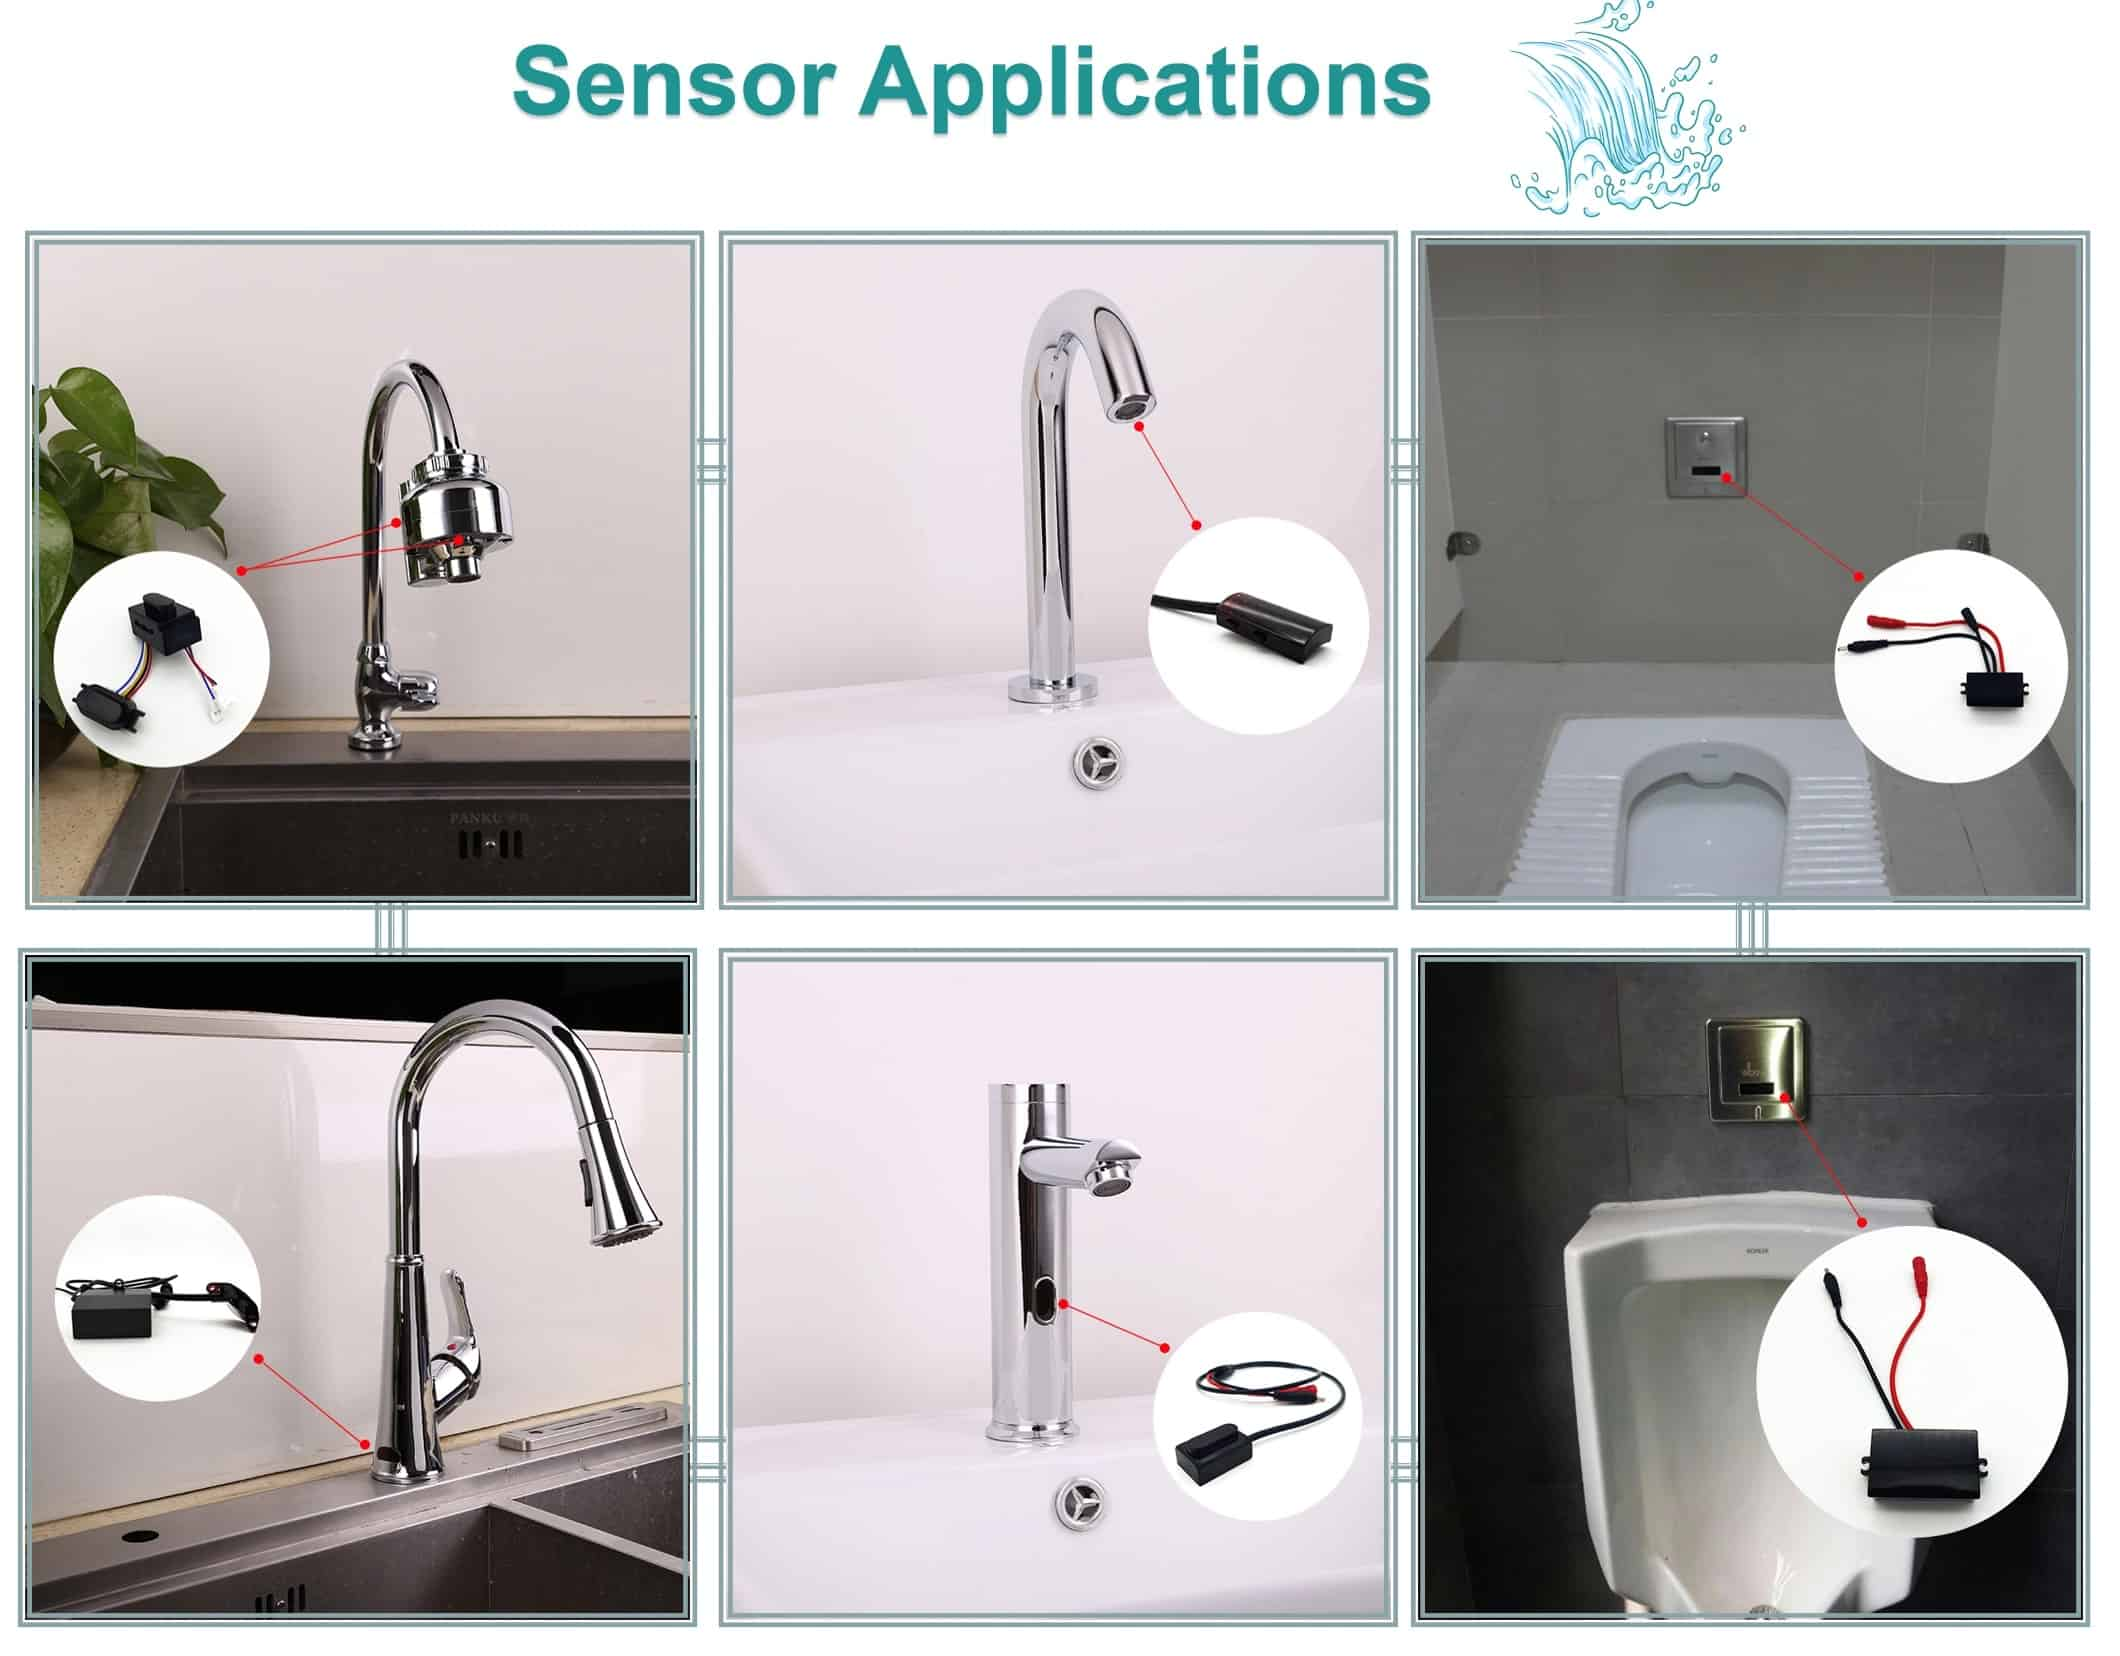 infrared sensor application